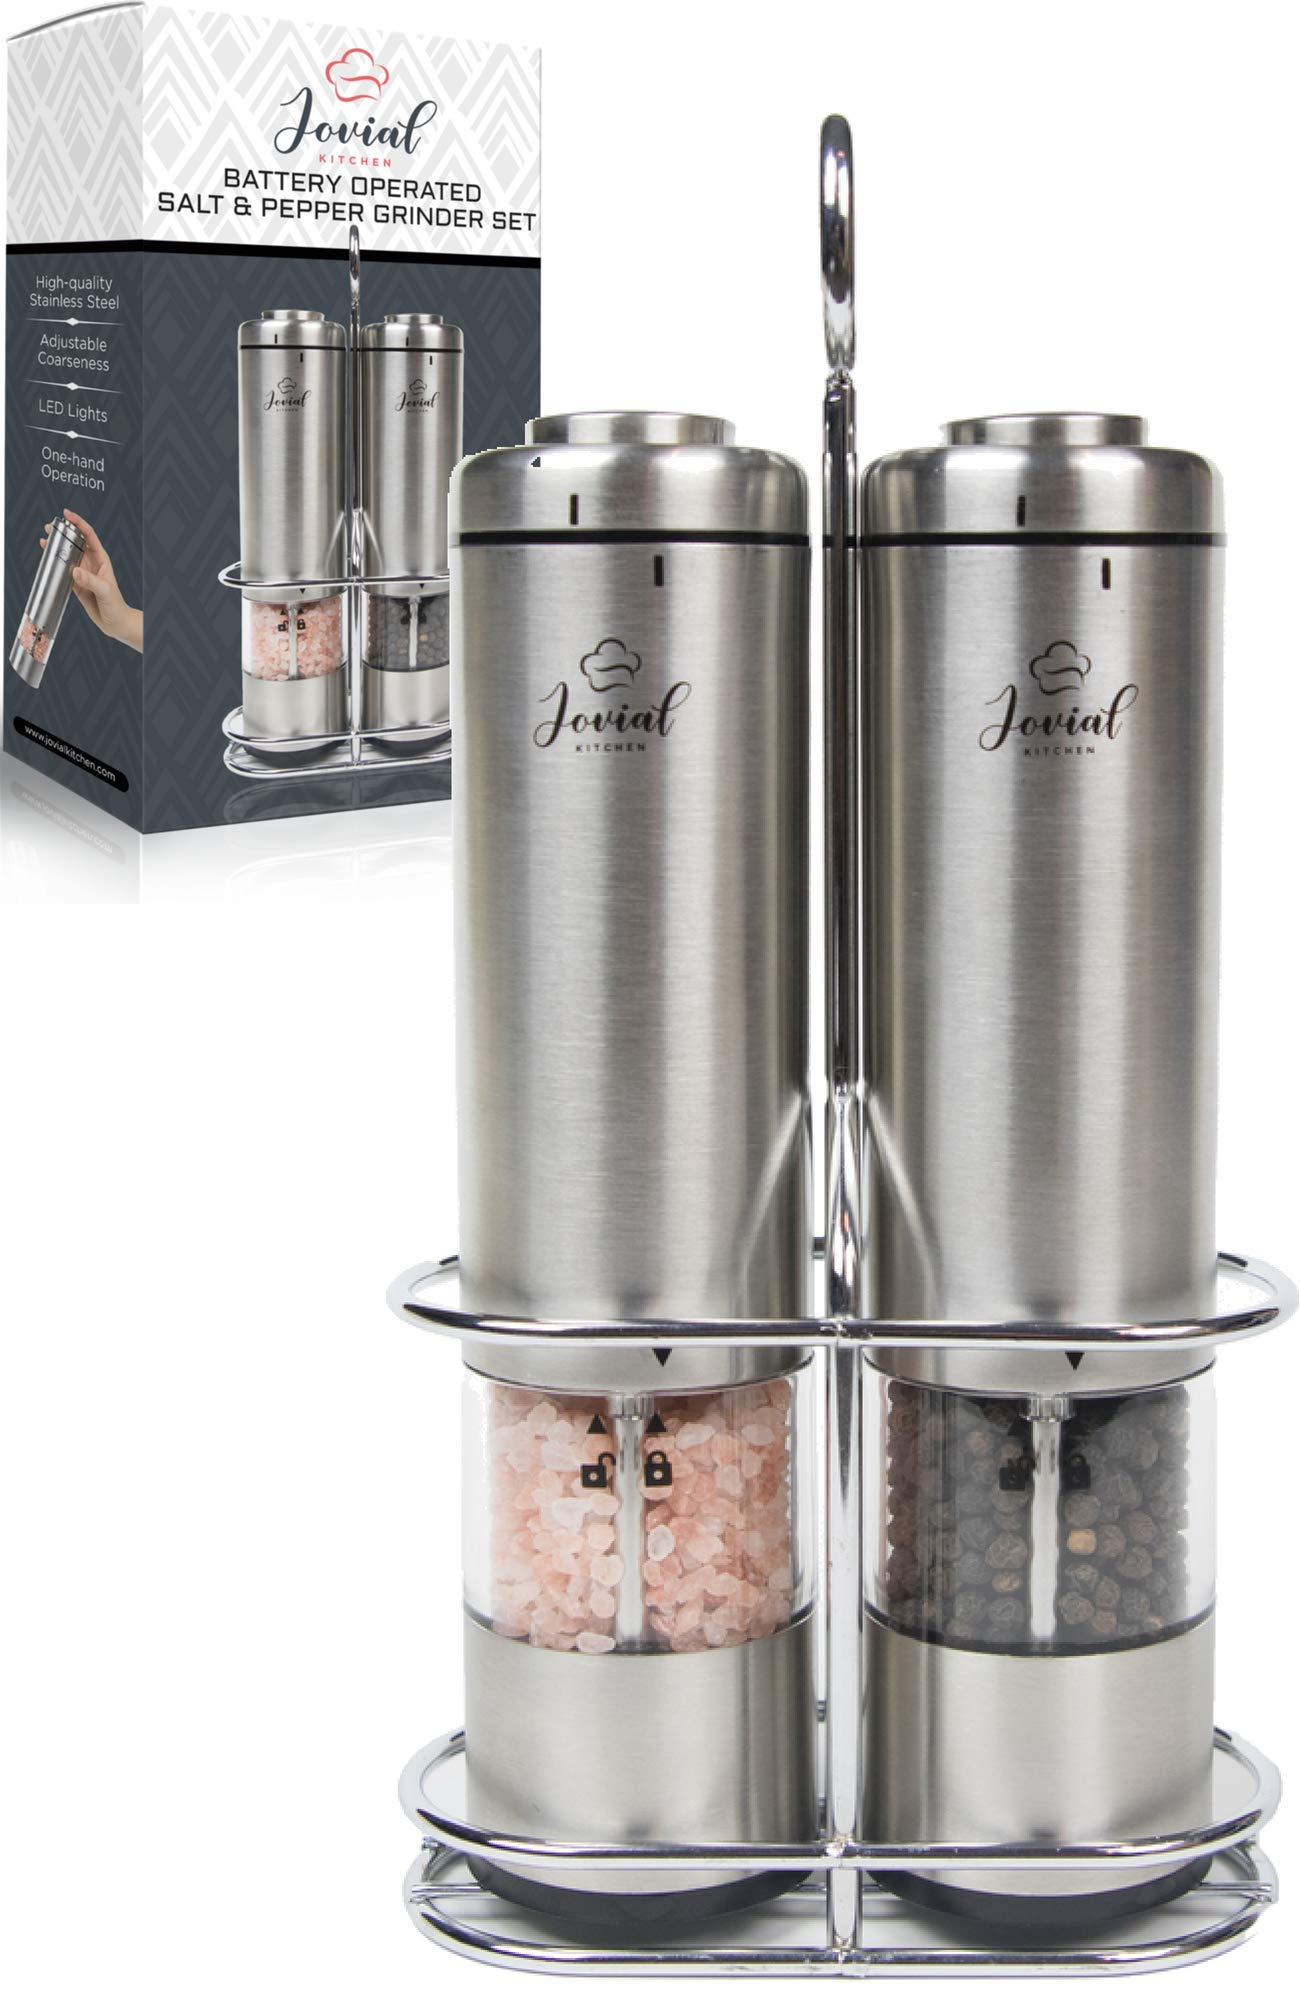 Jovial Kitchen Battery Operated Salt and Pepper Grinder Set - Electric Stainless Steel Salt&Pepper Mills(2) - Tall Power Shakers with Stand - Ceramic Grinders with LED lights and Adjustable Coarseness